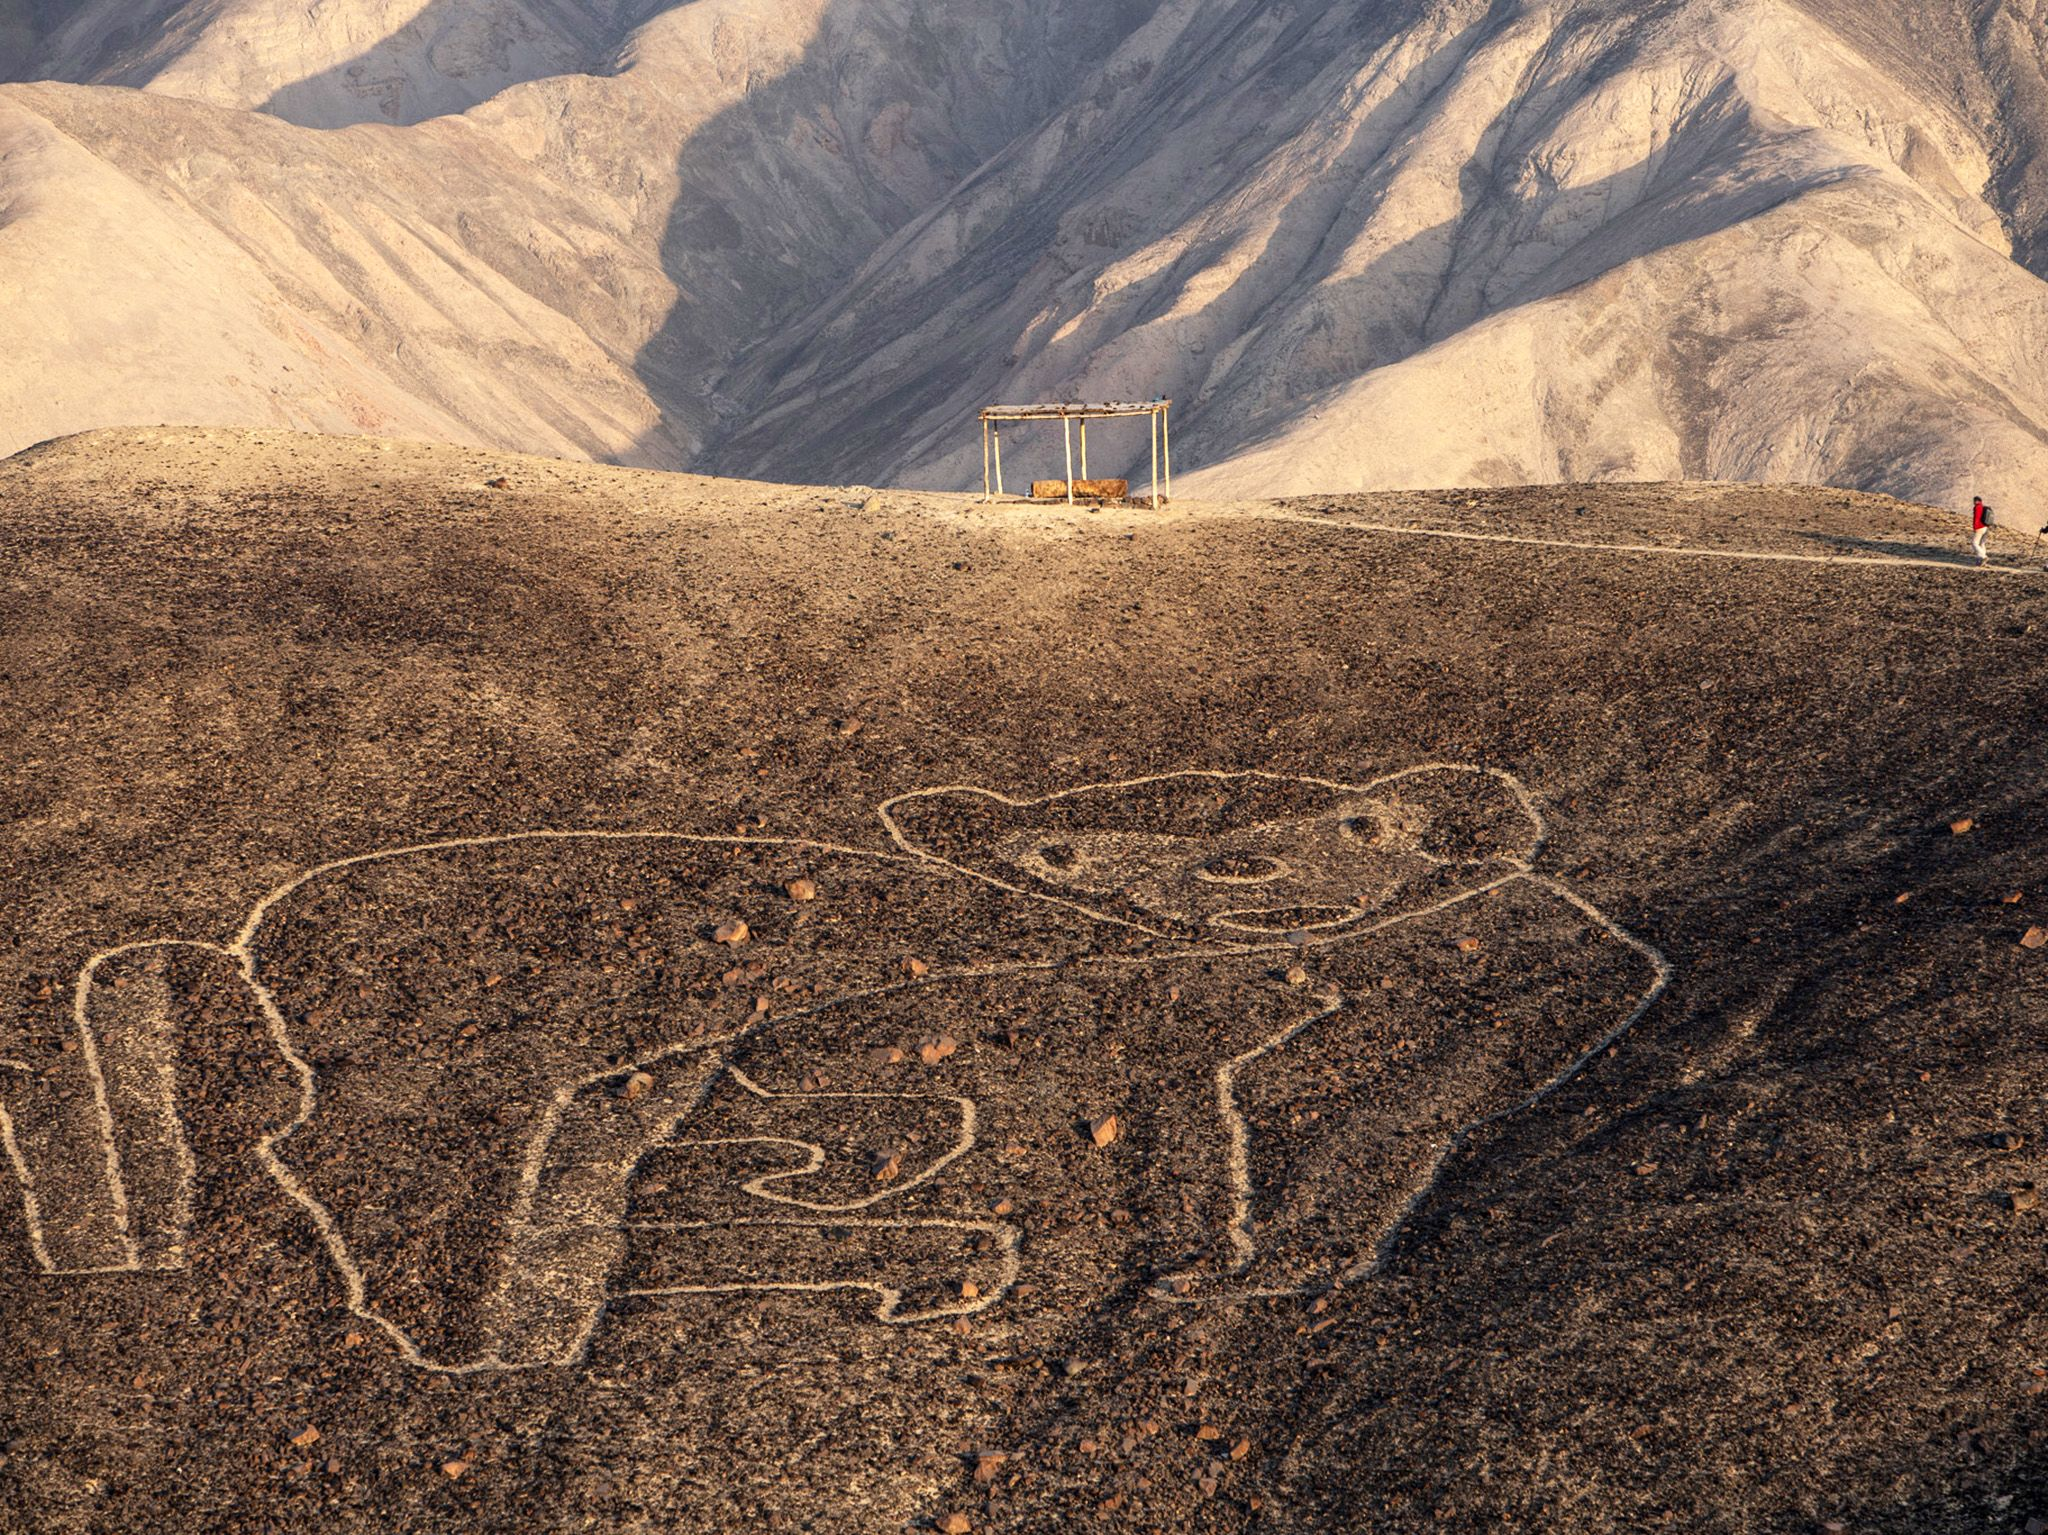 The Nasca Lines of Peru:  ancient images of animals and vast geometric designs etched in the... [Photo of the day - September 2019]